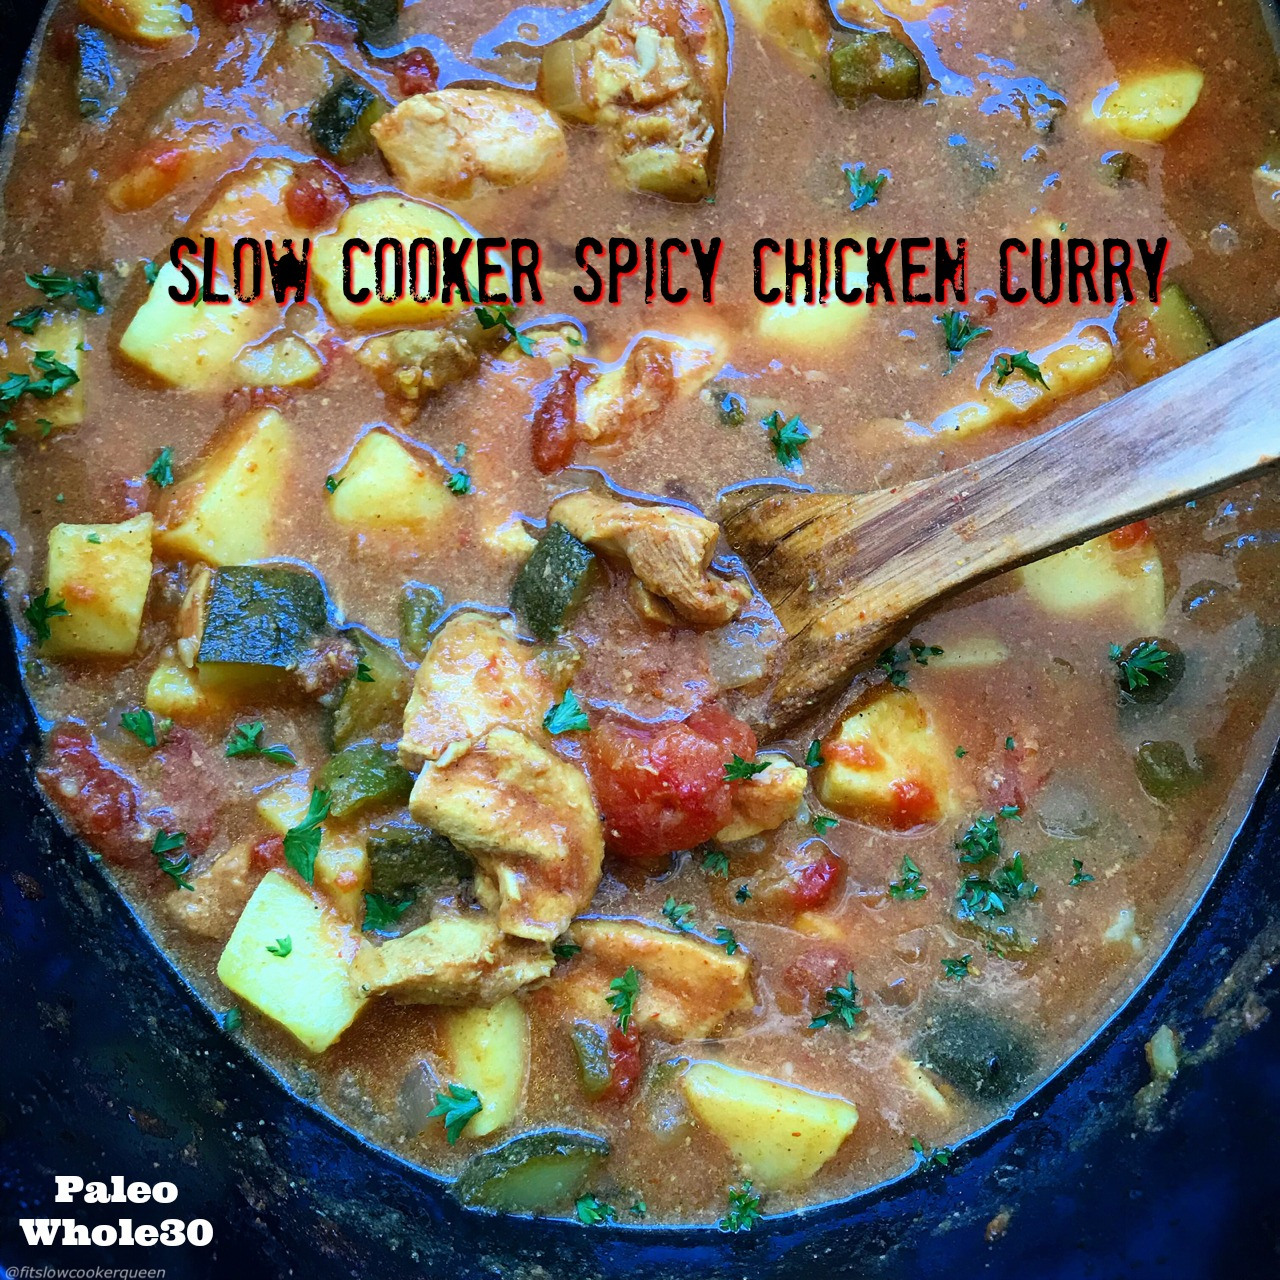 Slow cooker spicy chicken curry paleowhole30 fit slow cooker queen this indian flavored spicy chicken curry is not just an aromatic and flavorful dish forumfinder Images